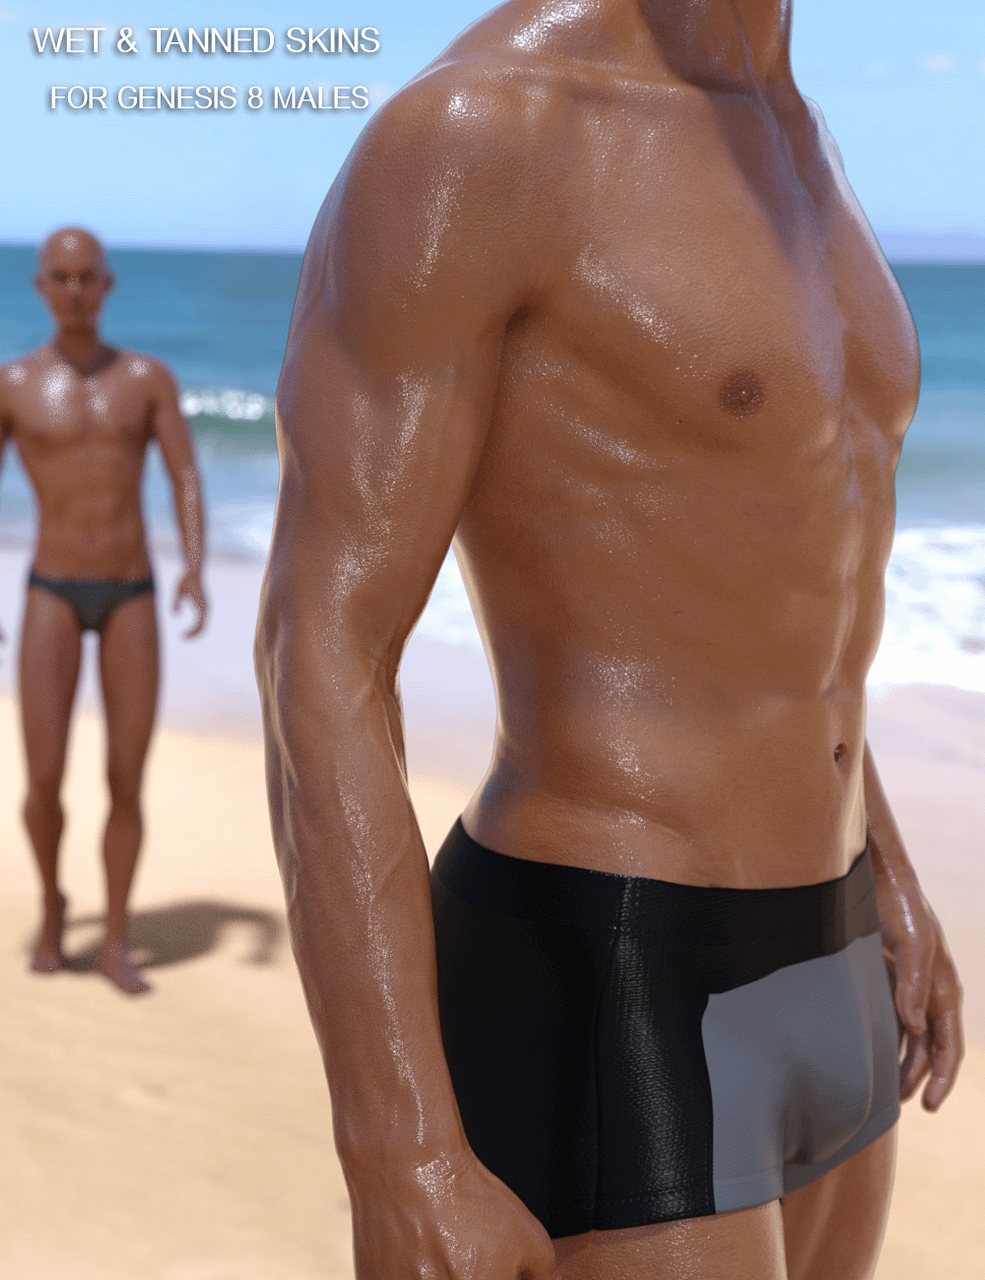 daz studio wet and tanned skins